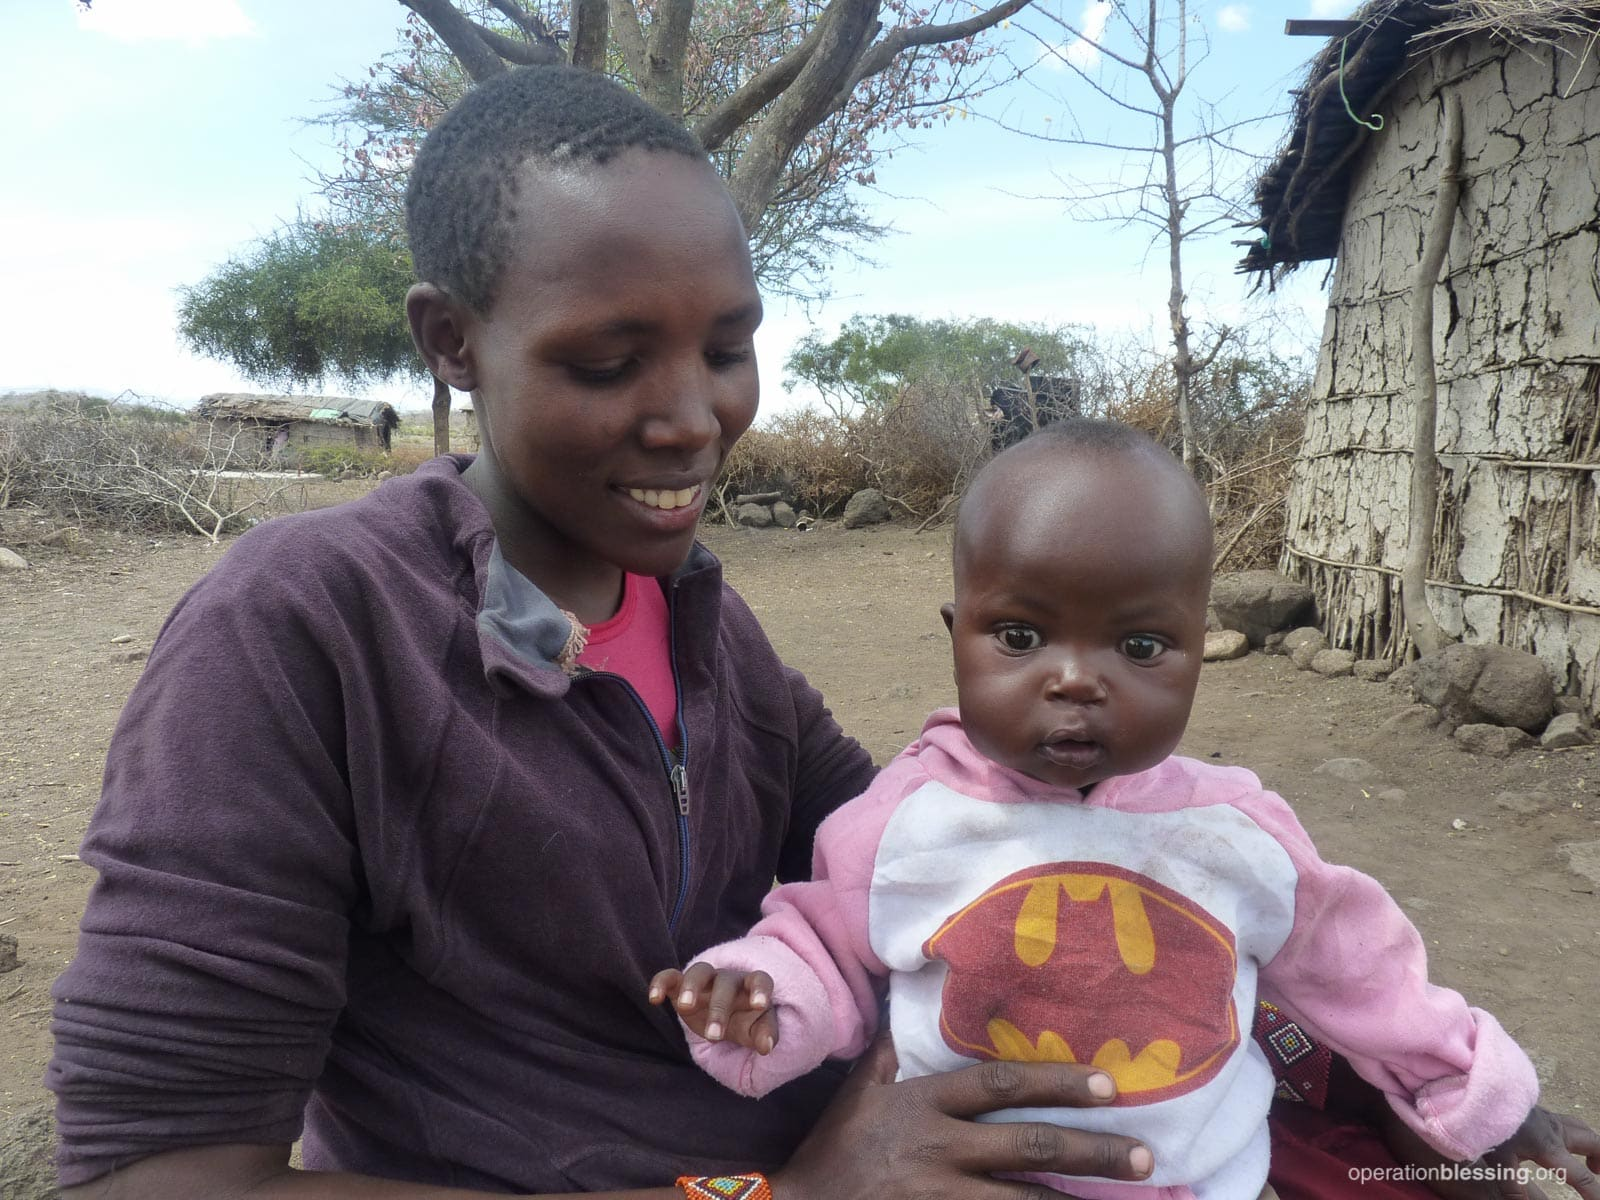 Baby Nkunkat in Kenya sits with his mother after successful cleft lip surgery